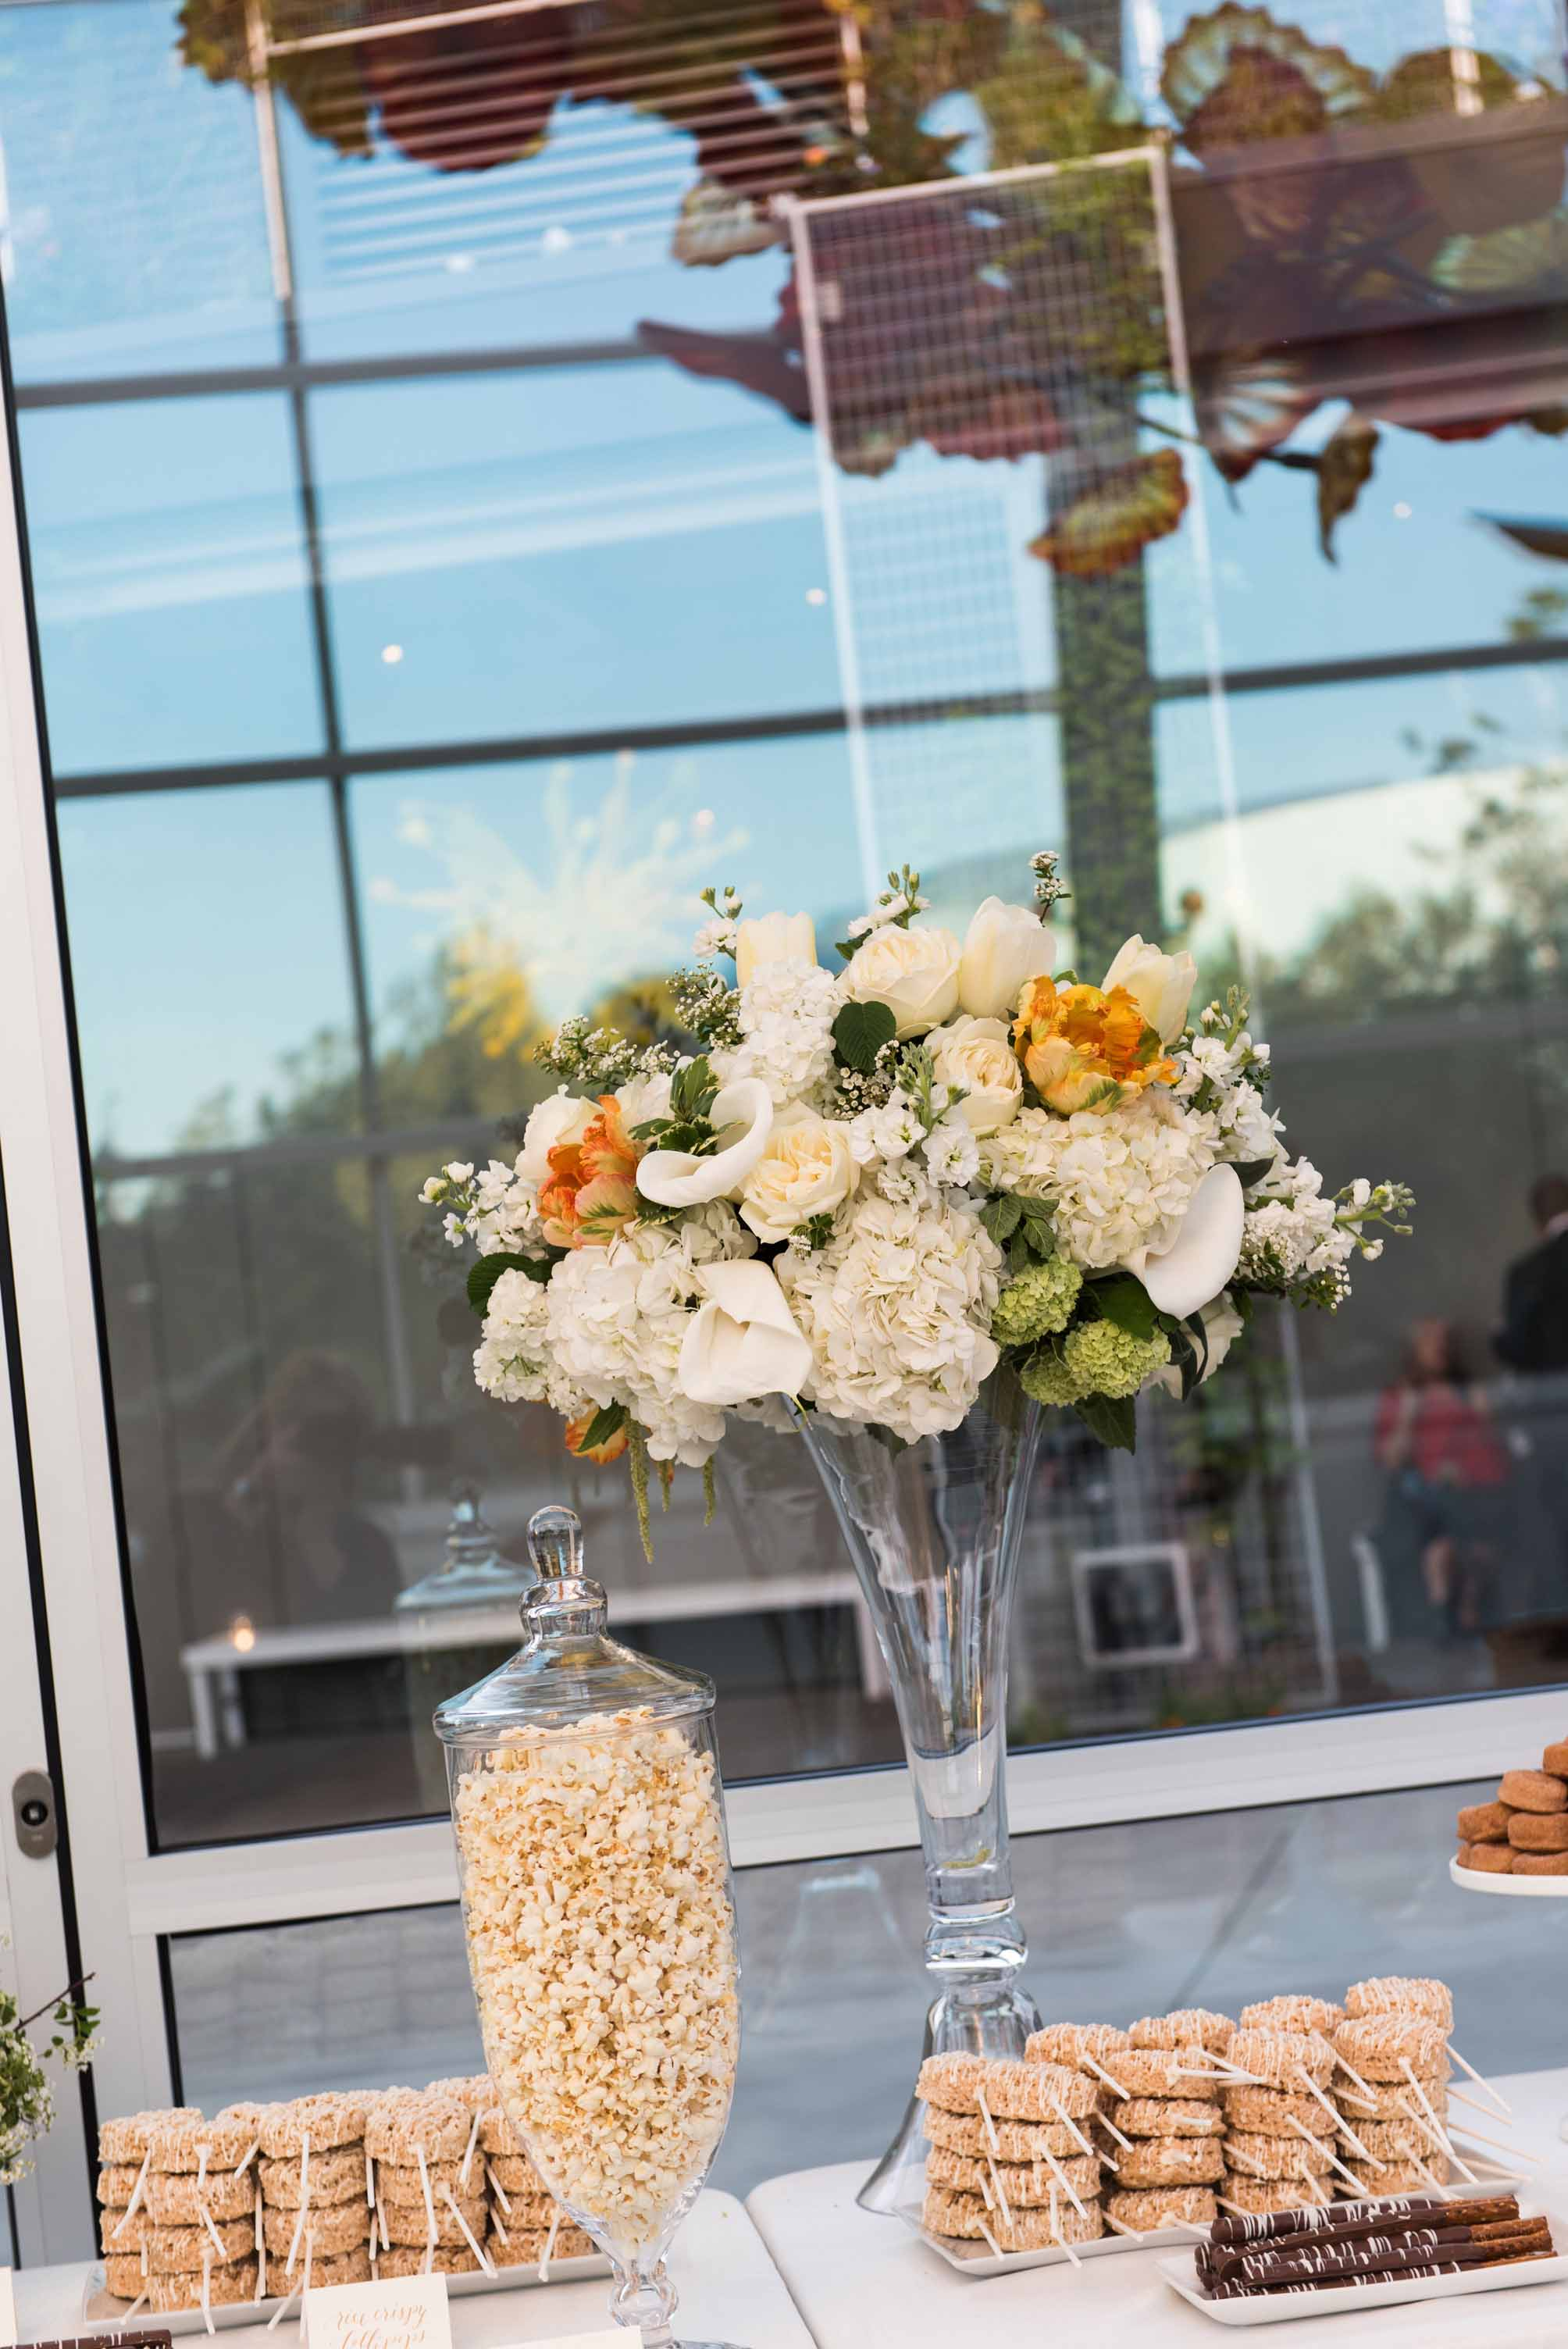 Centerpiece of orange and white spring flowers on top of tall glass vase as decor on dessert table at wedding reception